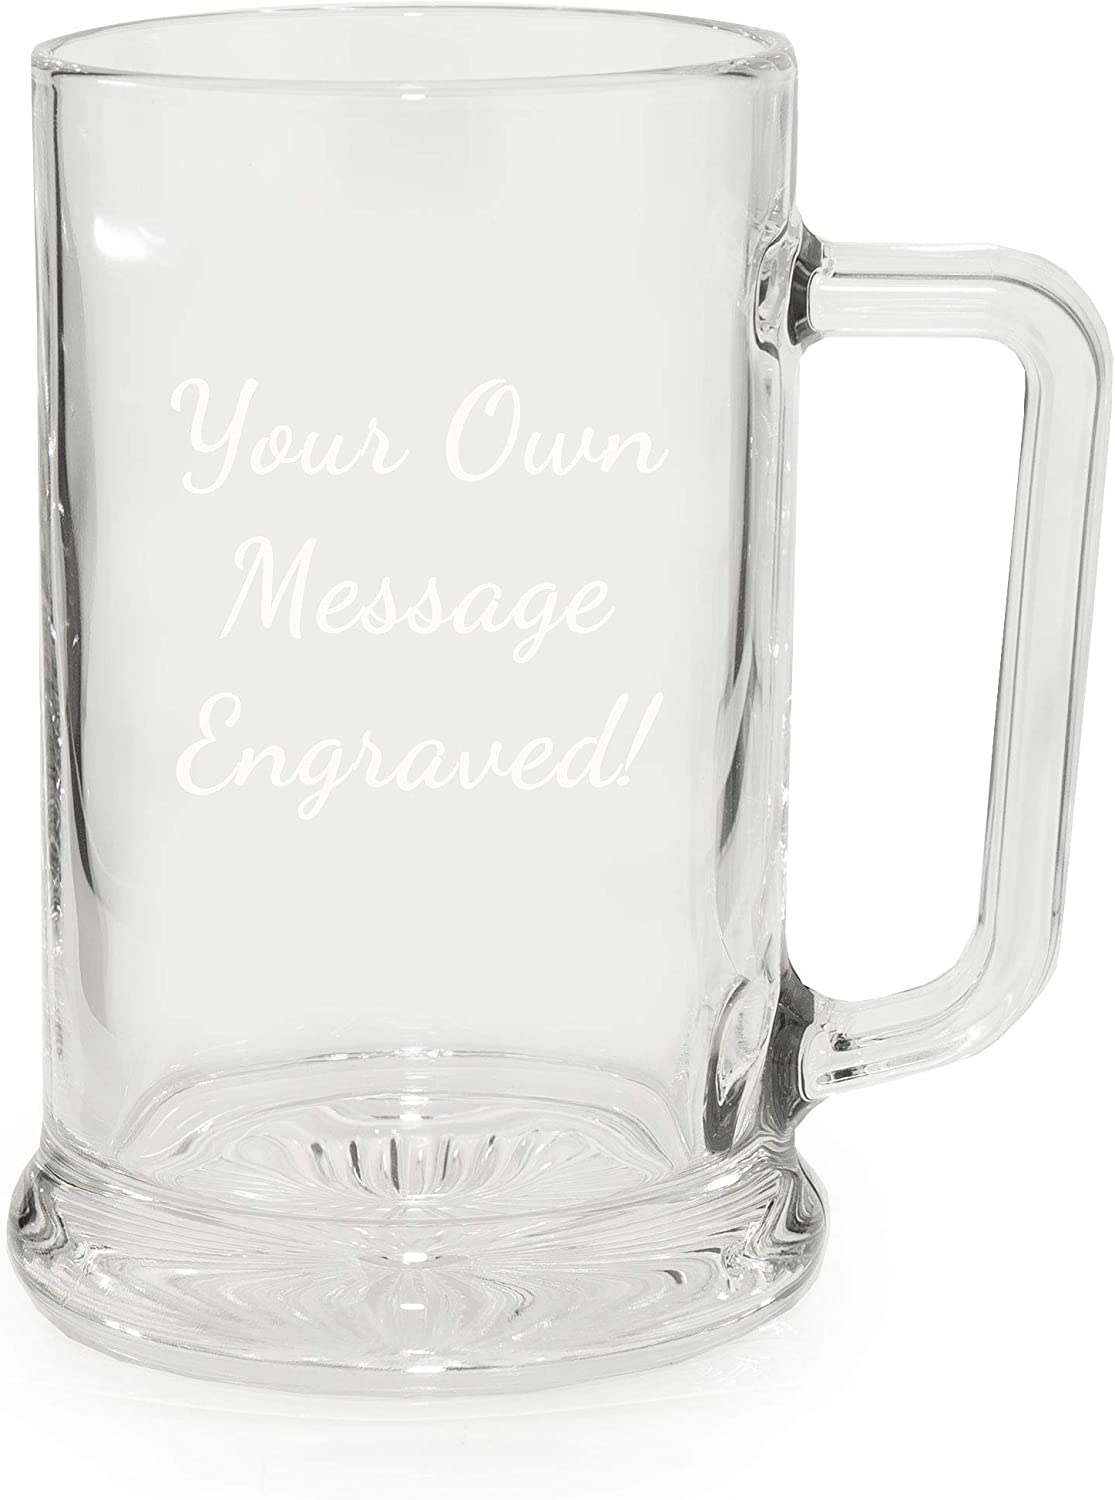 Personalised Glass Usher Tankard Engraved Gift with Blue Silk Lined Gift Box